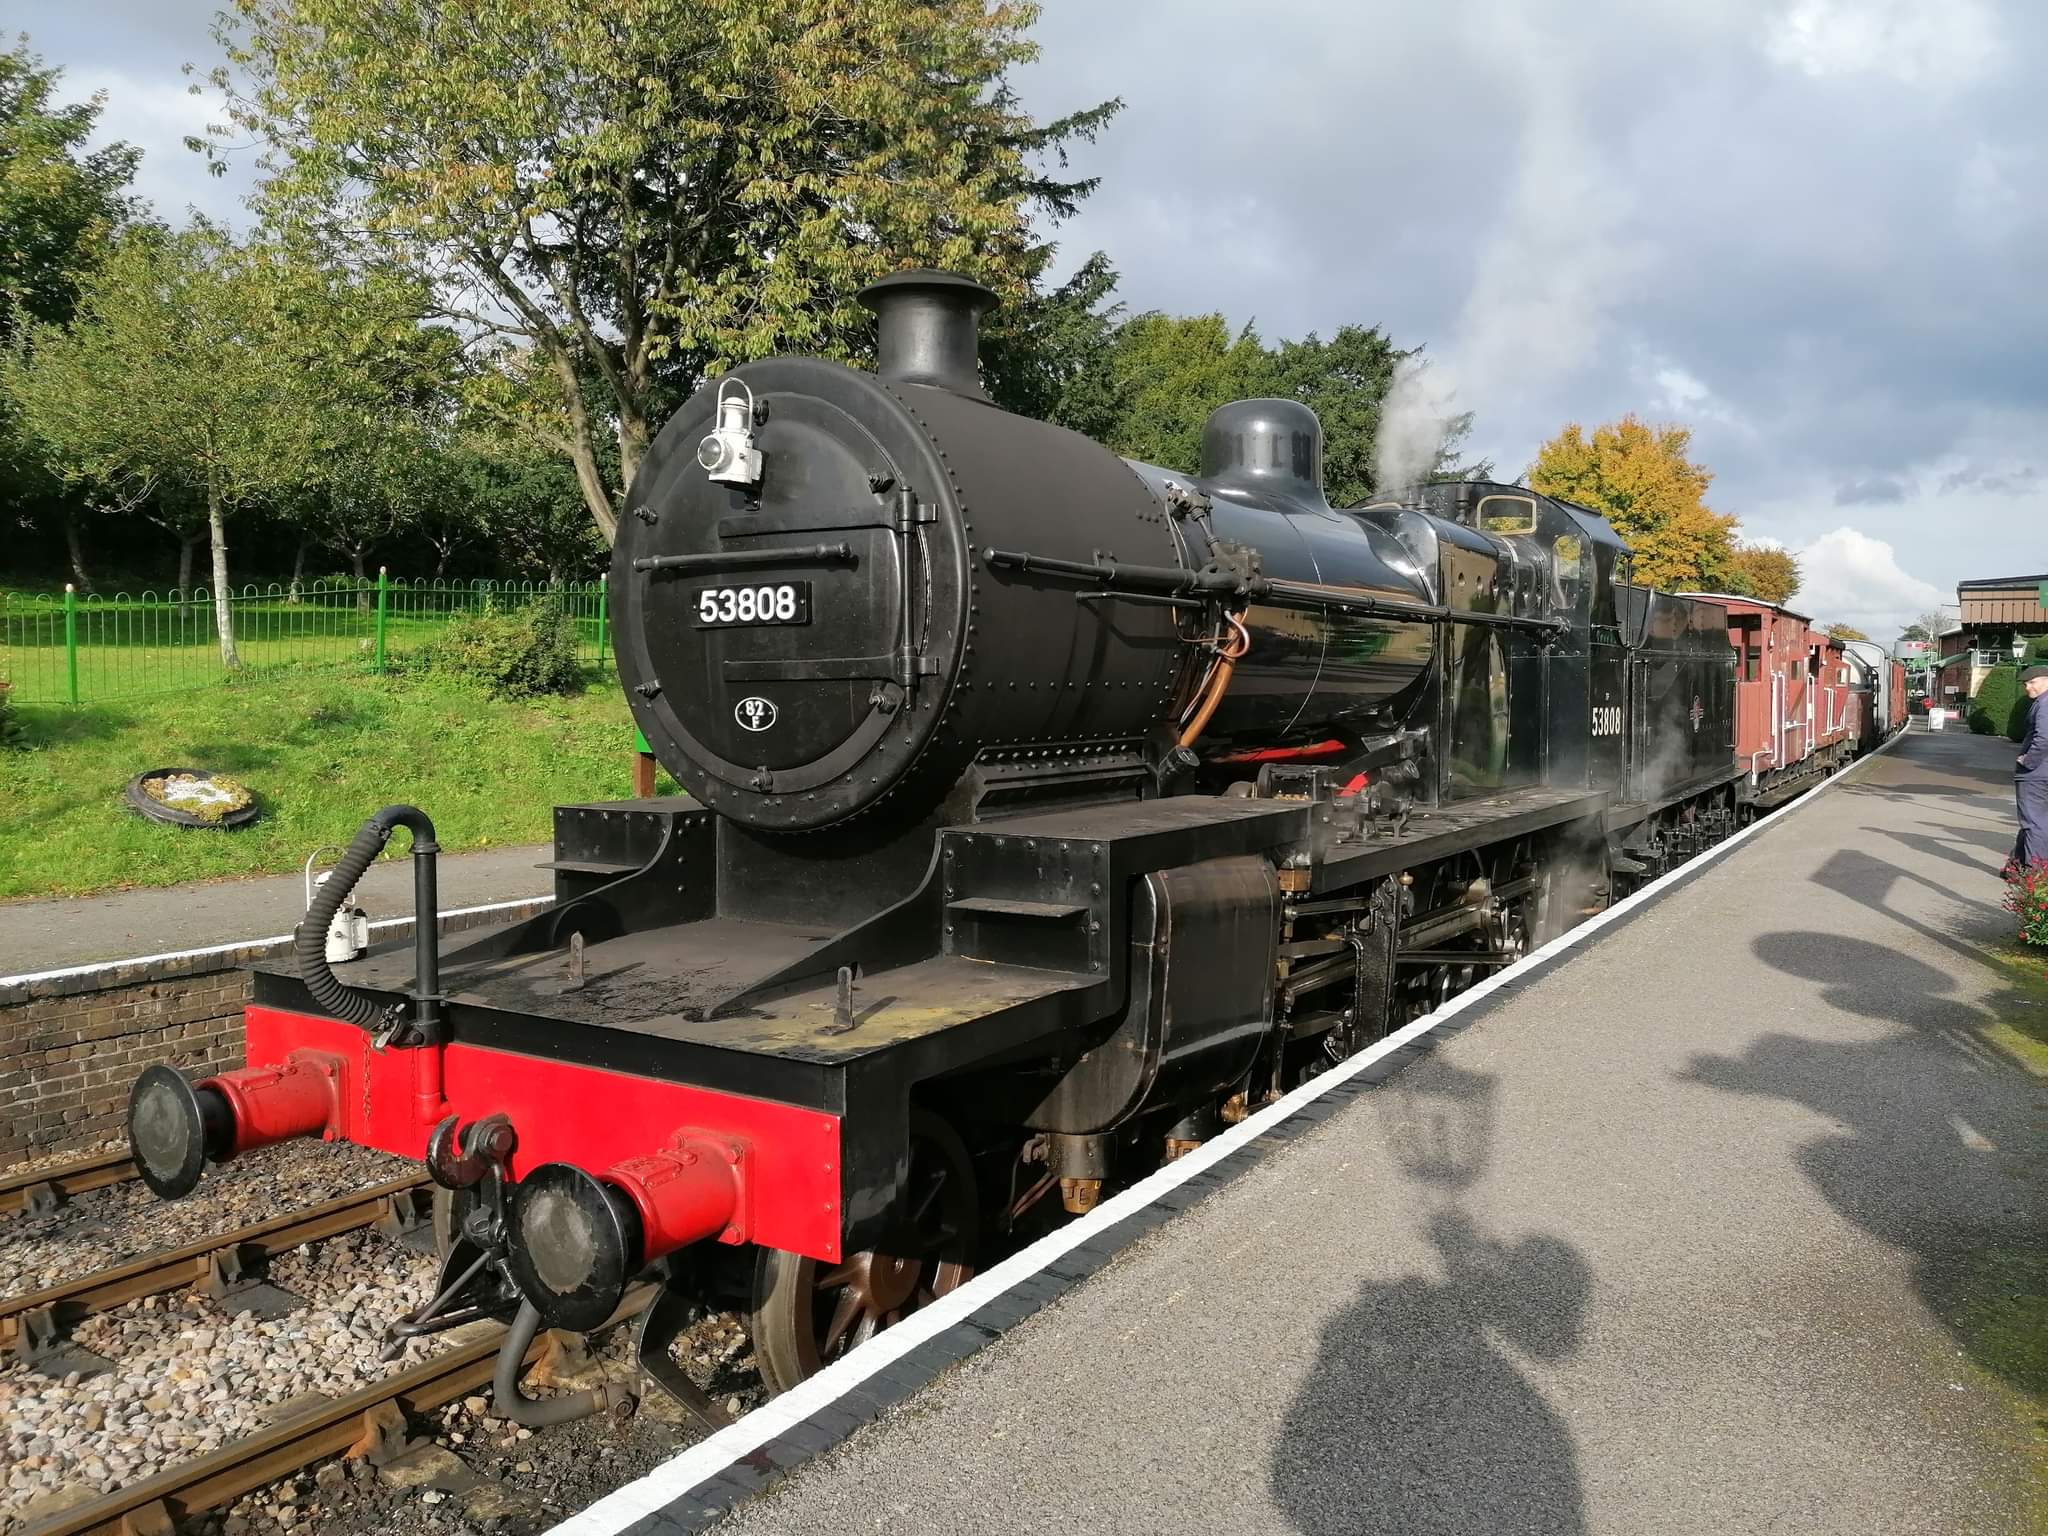 53808 at the platform at Ropley on 14 October.